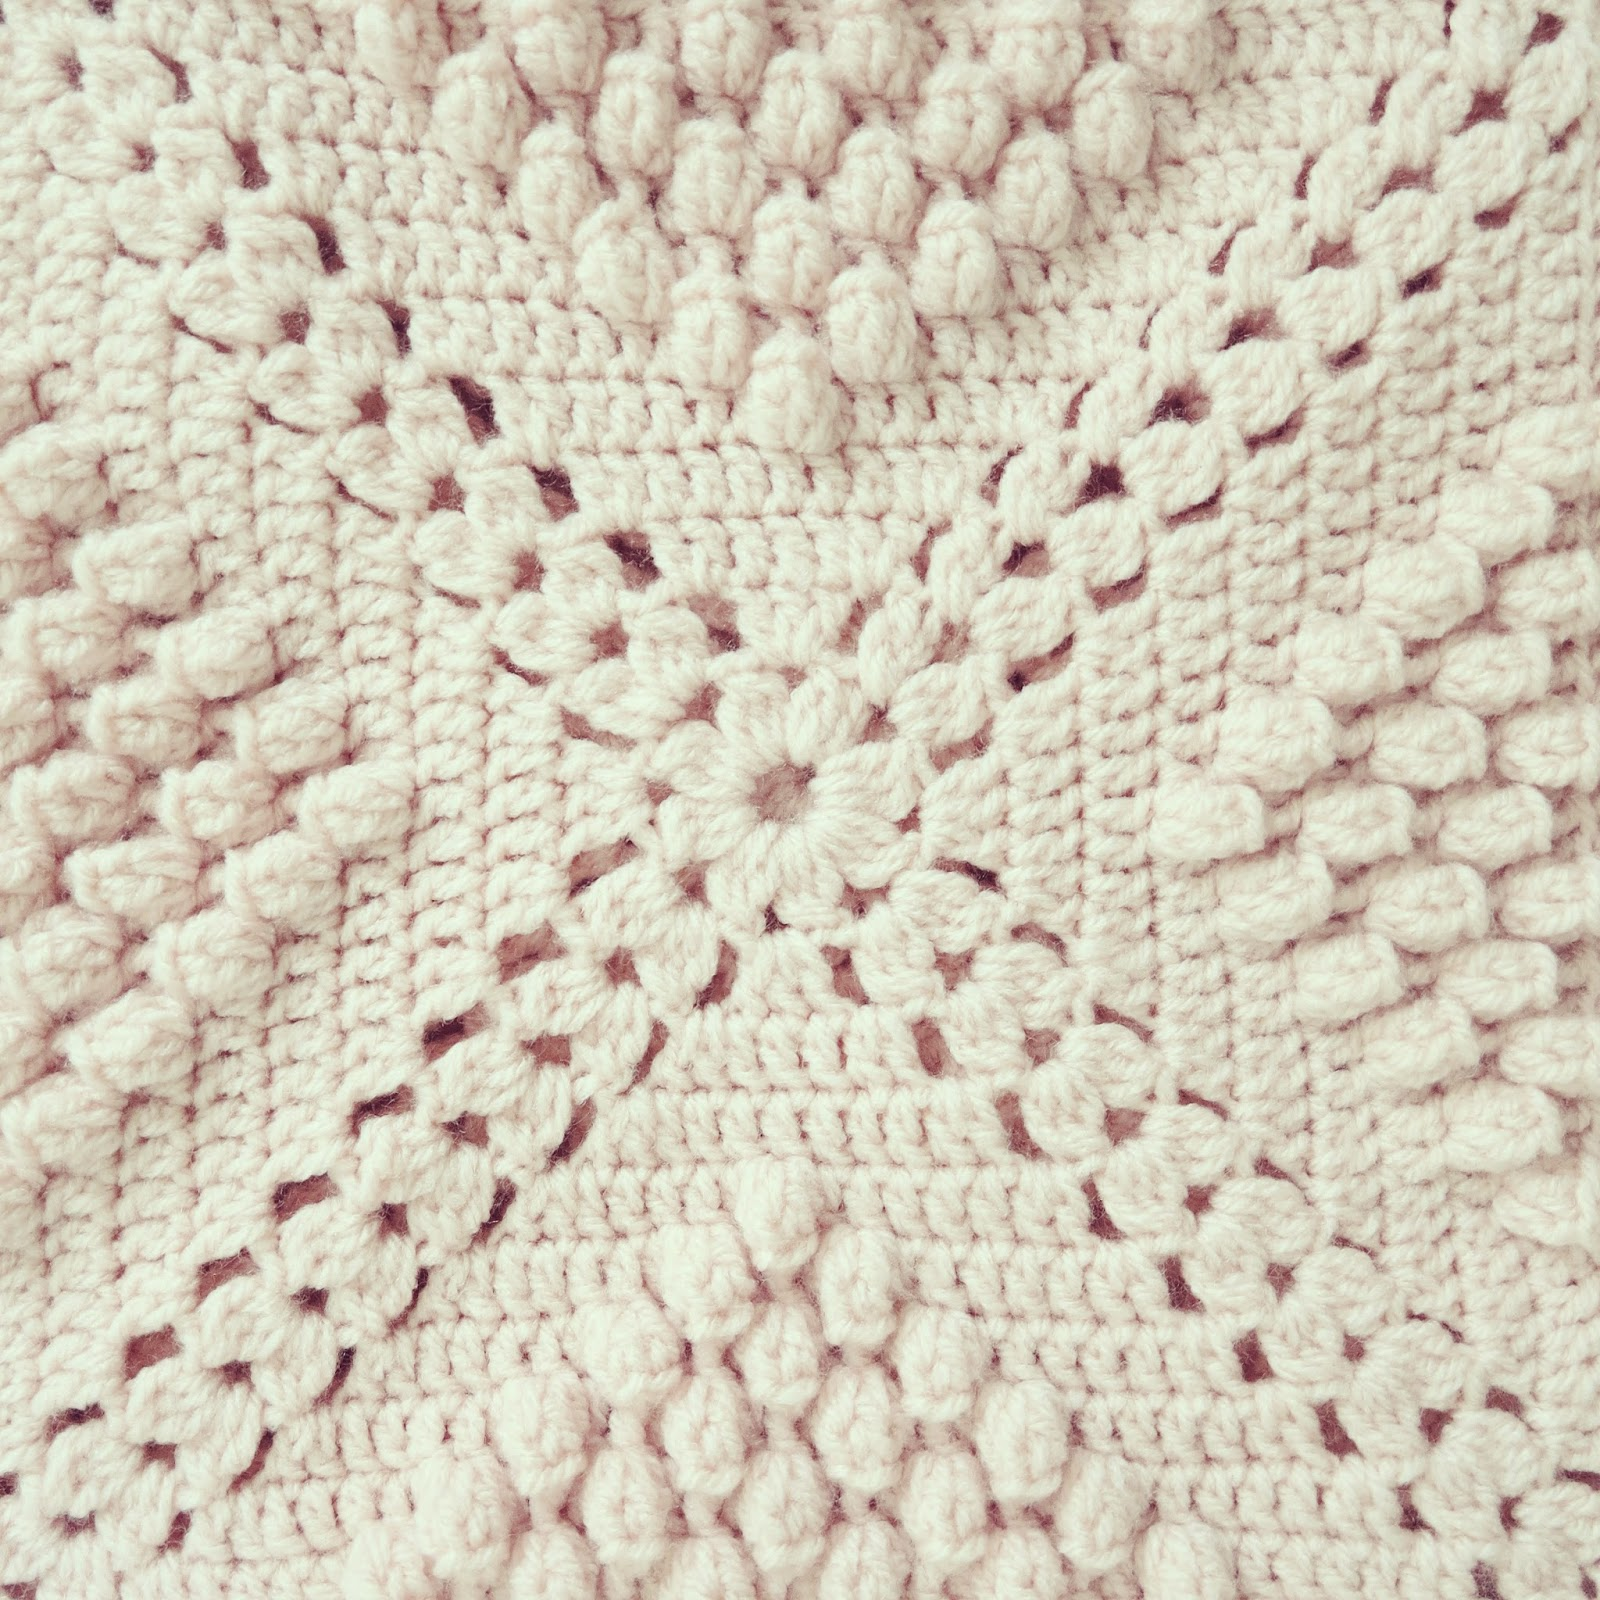 Crochet Patterns Stitches : ... of 5 completed double crochets in 1 one stitch,they are then joined